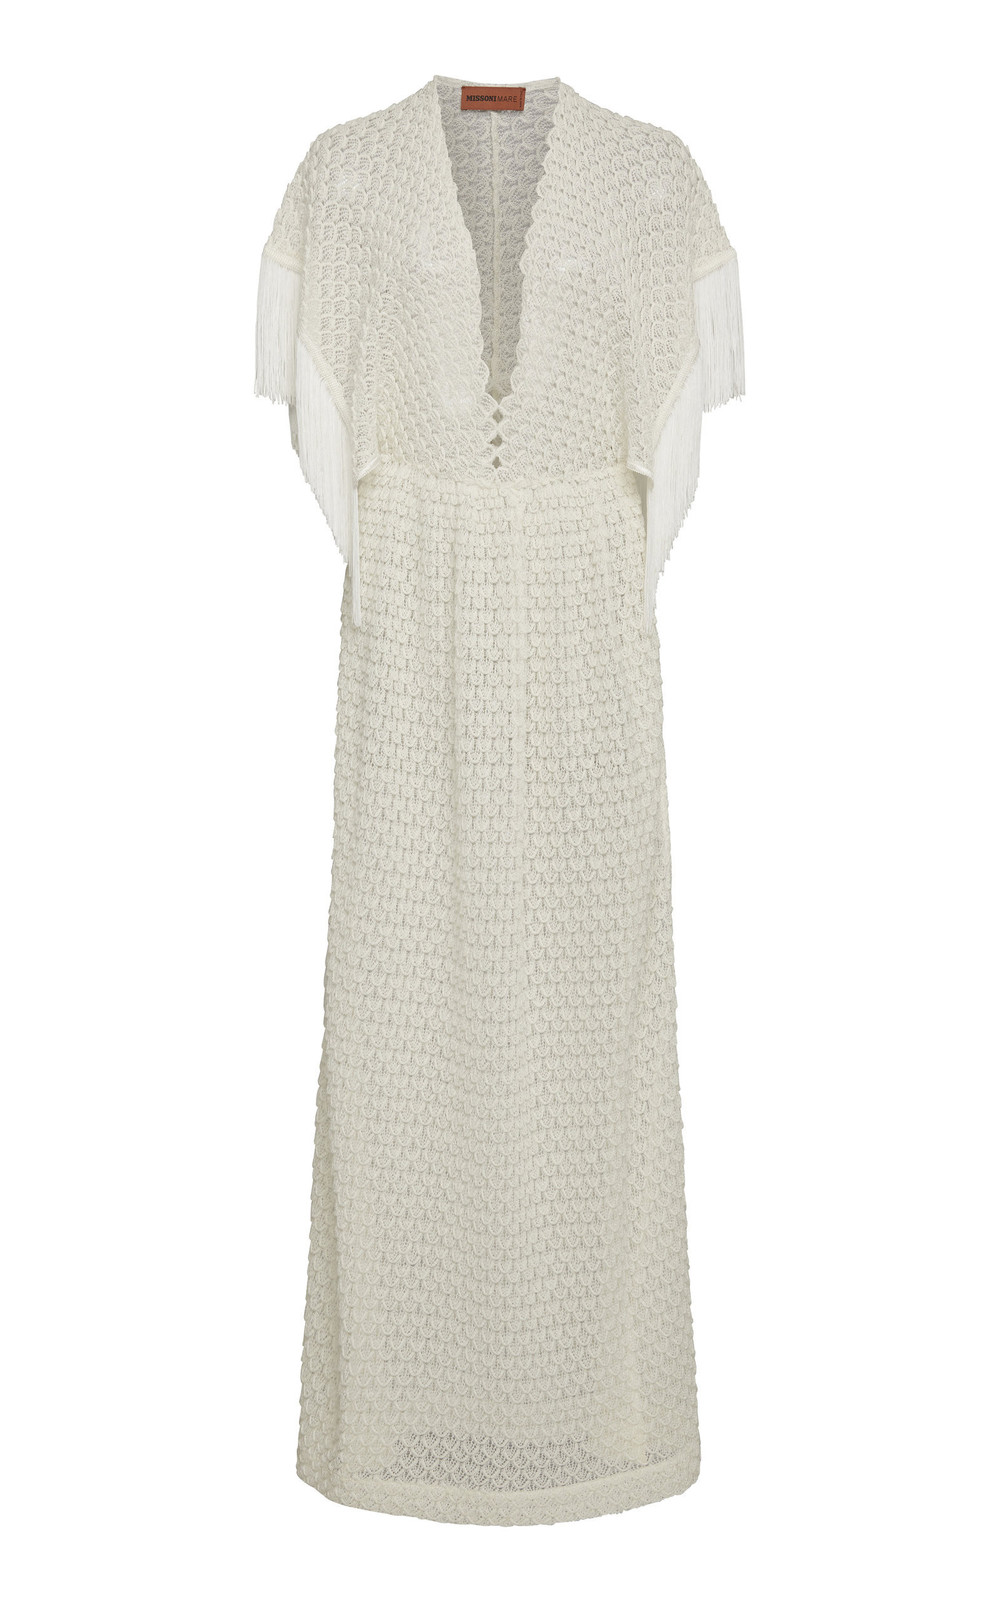 Missoni Mare Fringe-Trimmed Knit Coverup in white